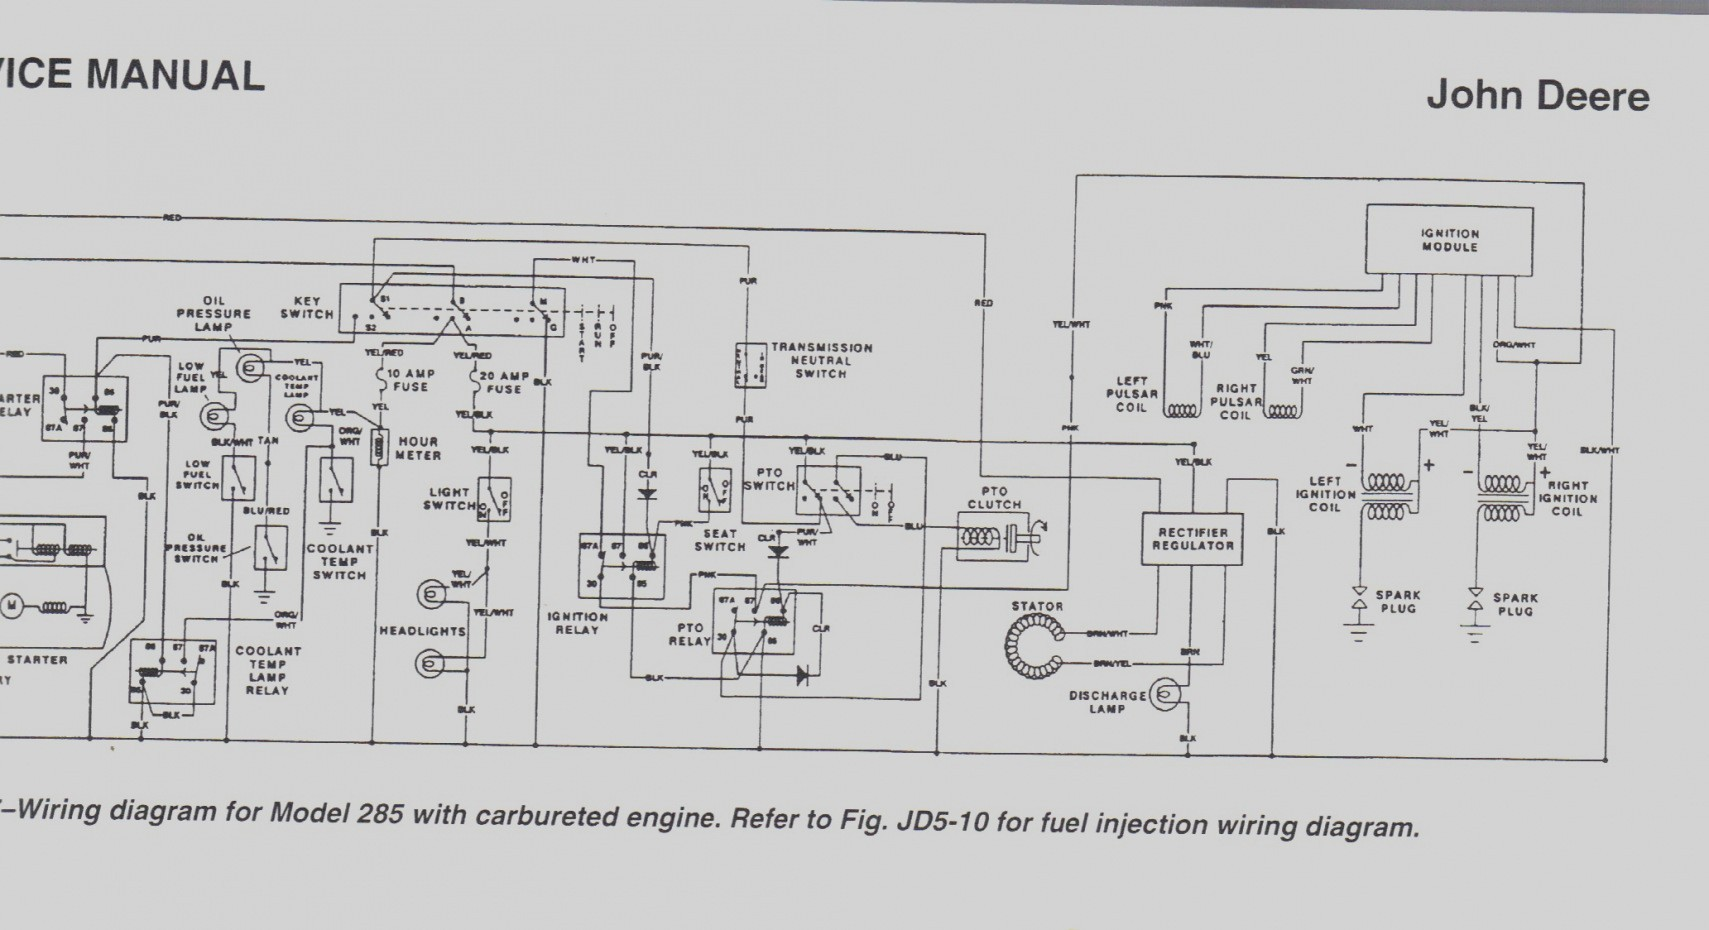 john deere l130 wiring diagram elegant dorable john deere la105 wiring diagram crest the wire magnoxfo of john deere l130 wiring diagram john deere la105 wiring diagram wiring library